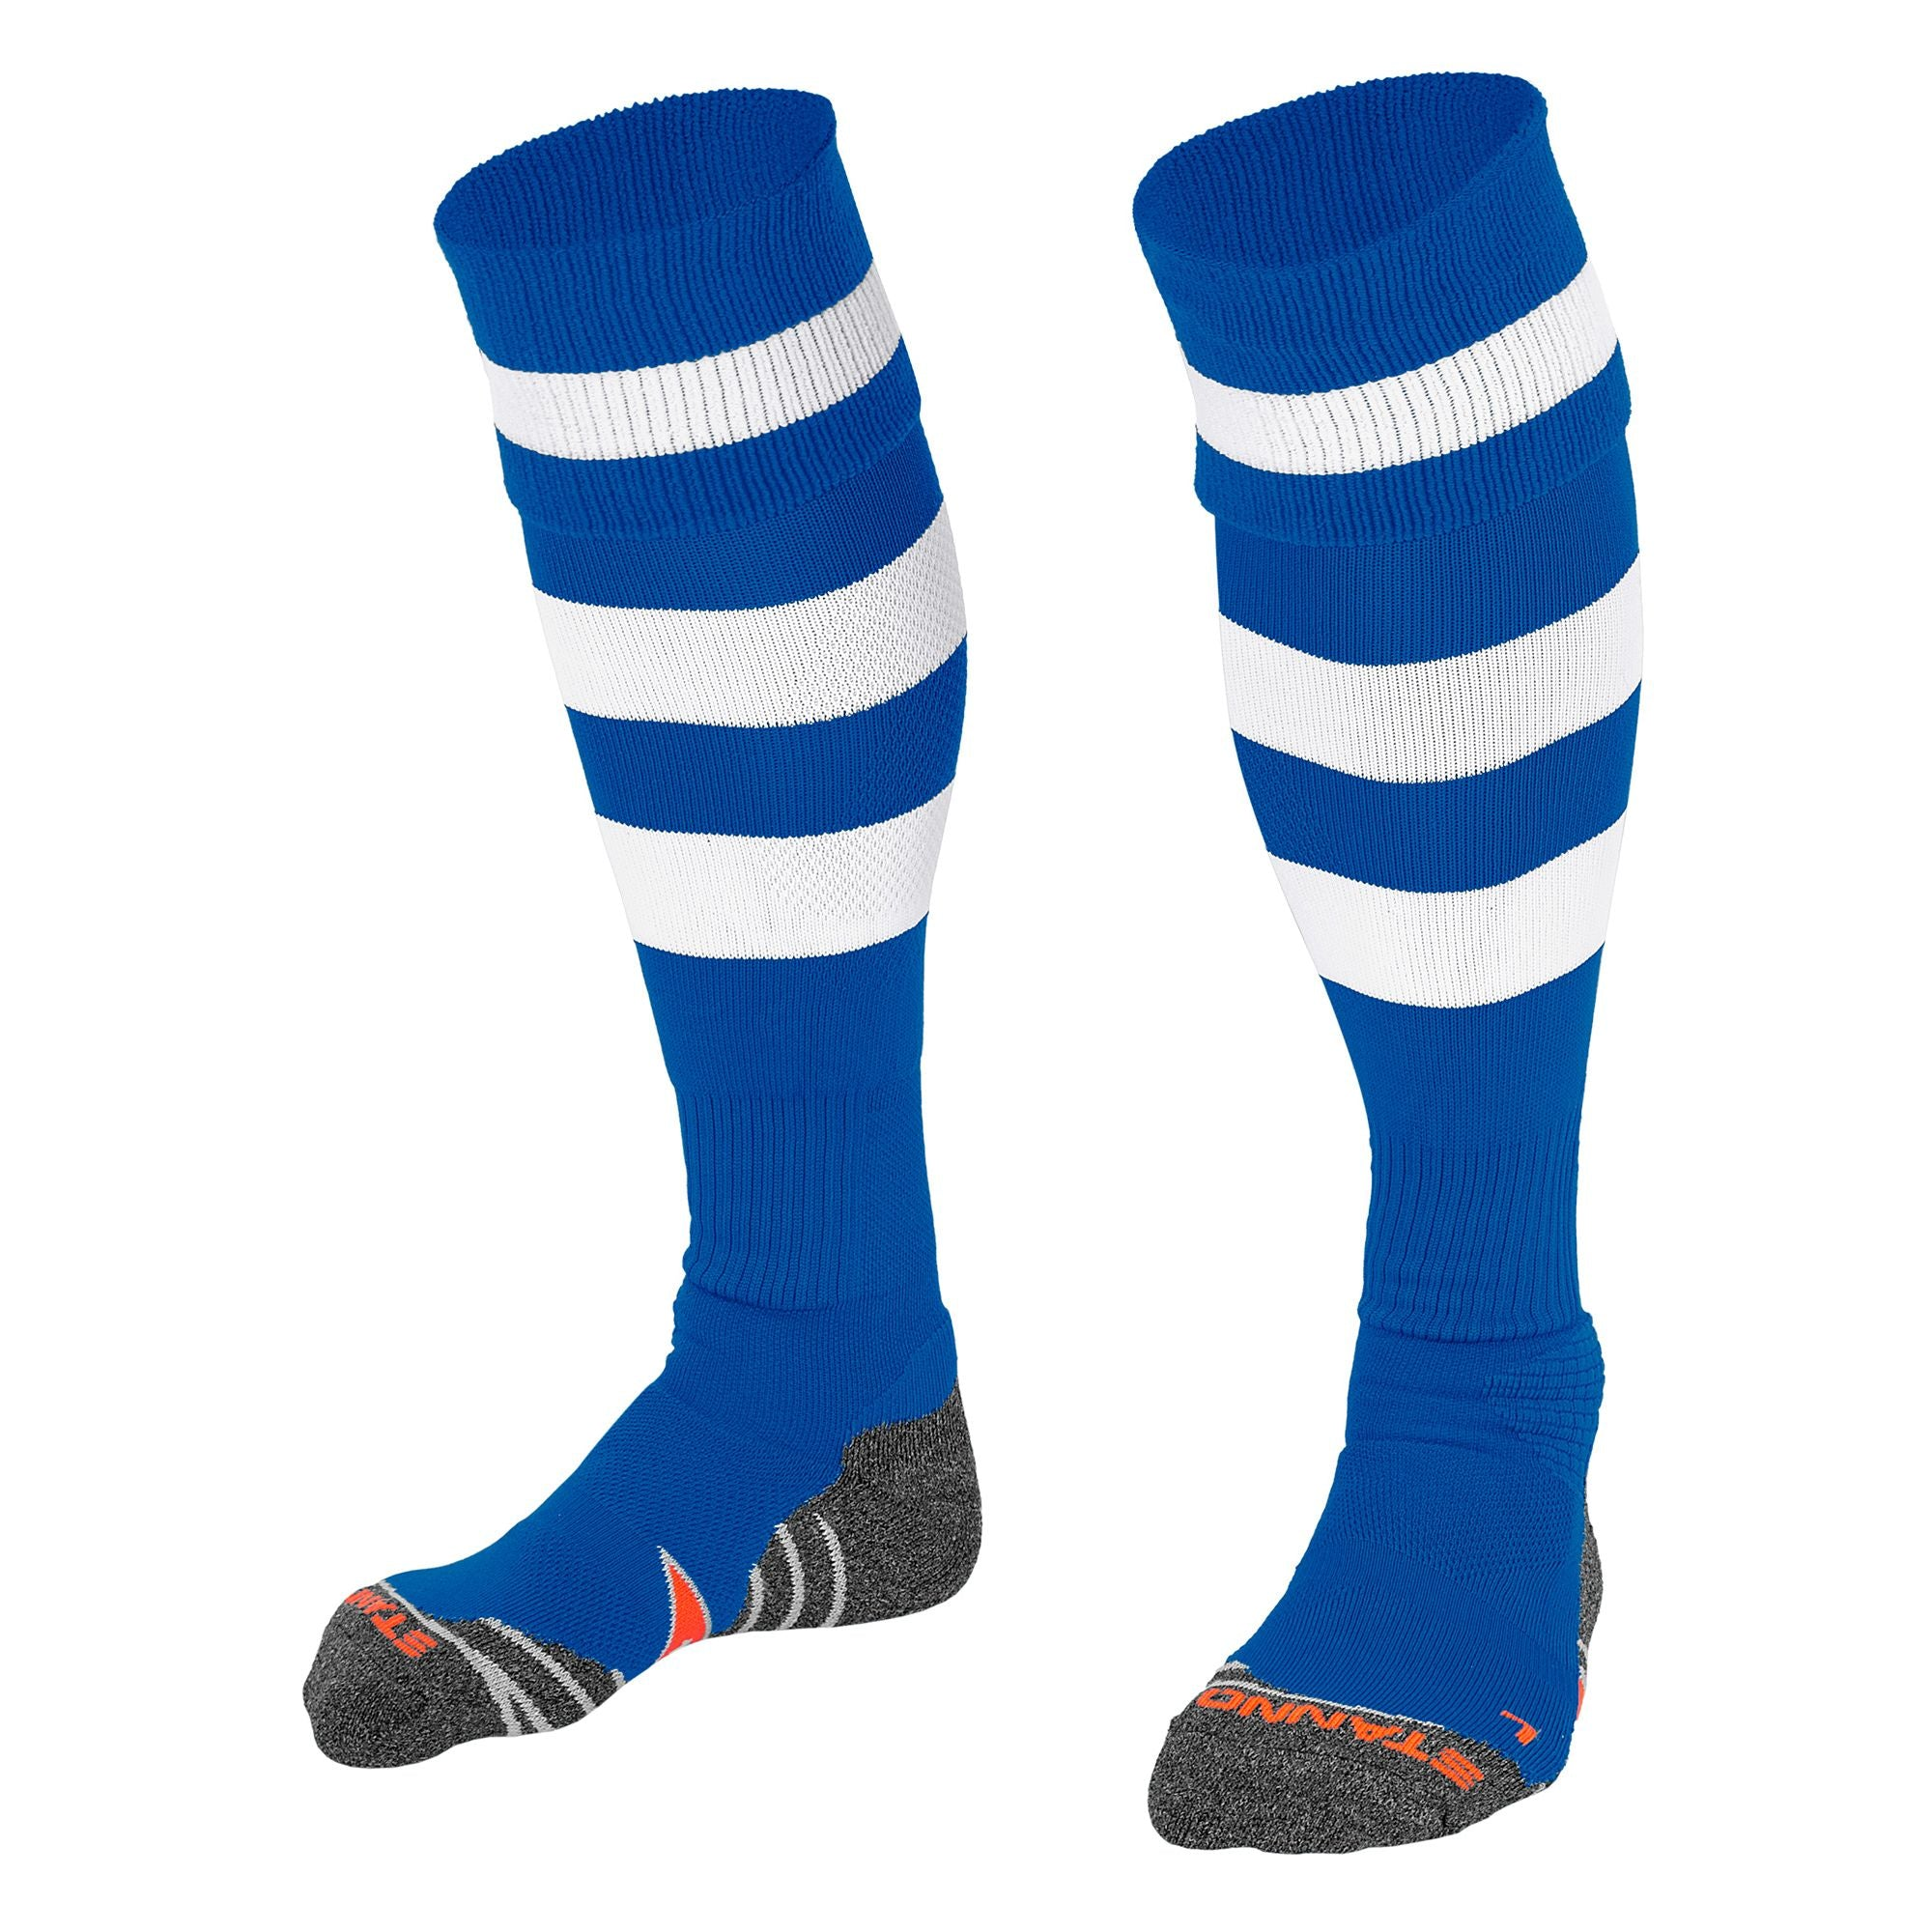 Stanno Original sock in royal blue with 2 thick horizontal white stripes through the centre of the sock and one on the turnover. d